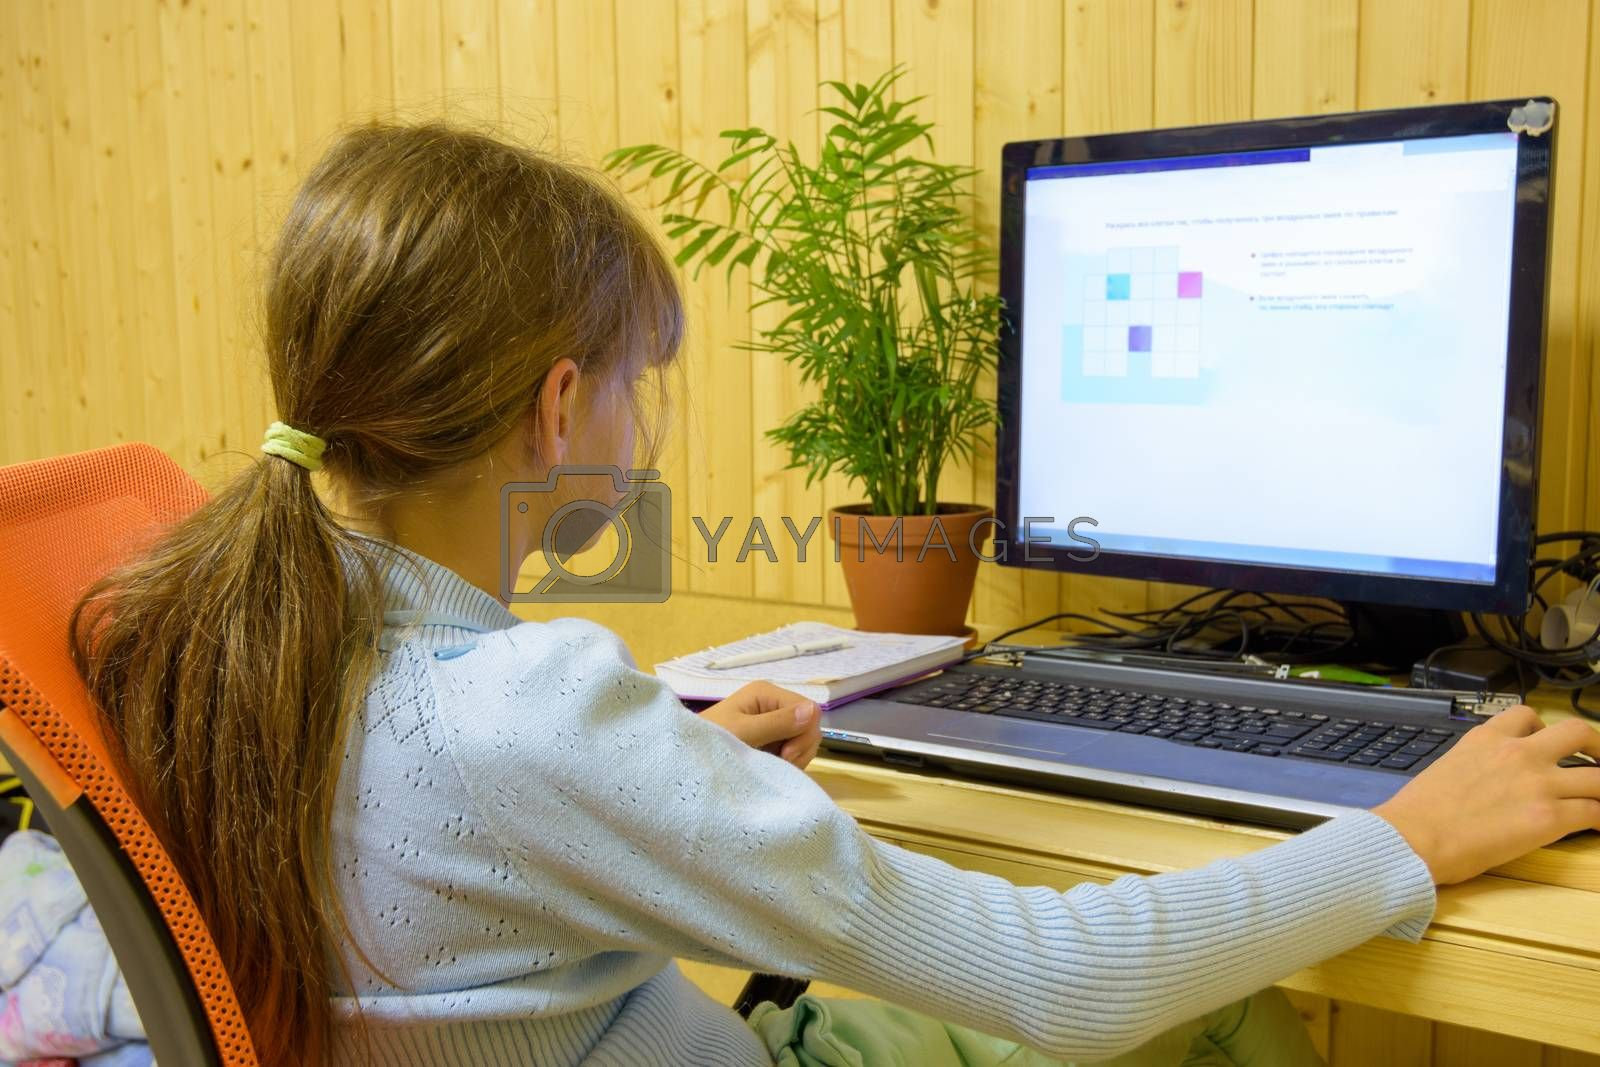 A student passes distance learning tasks on a computer